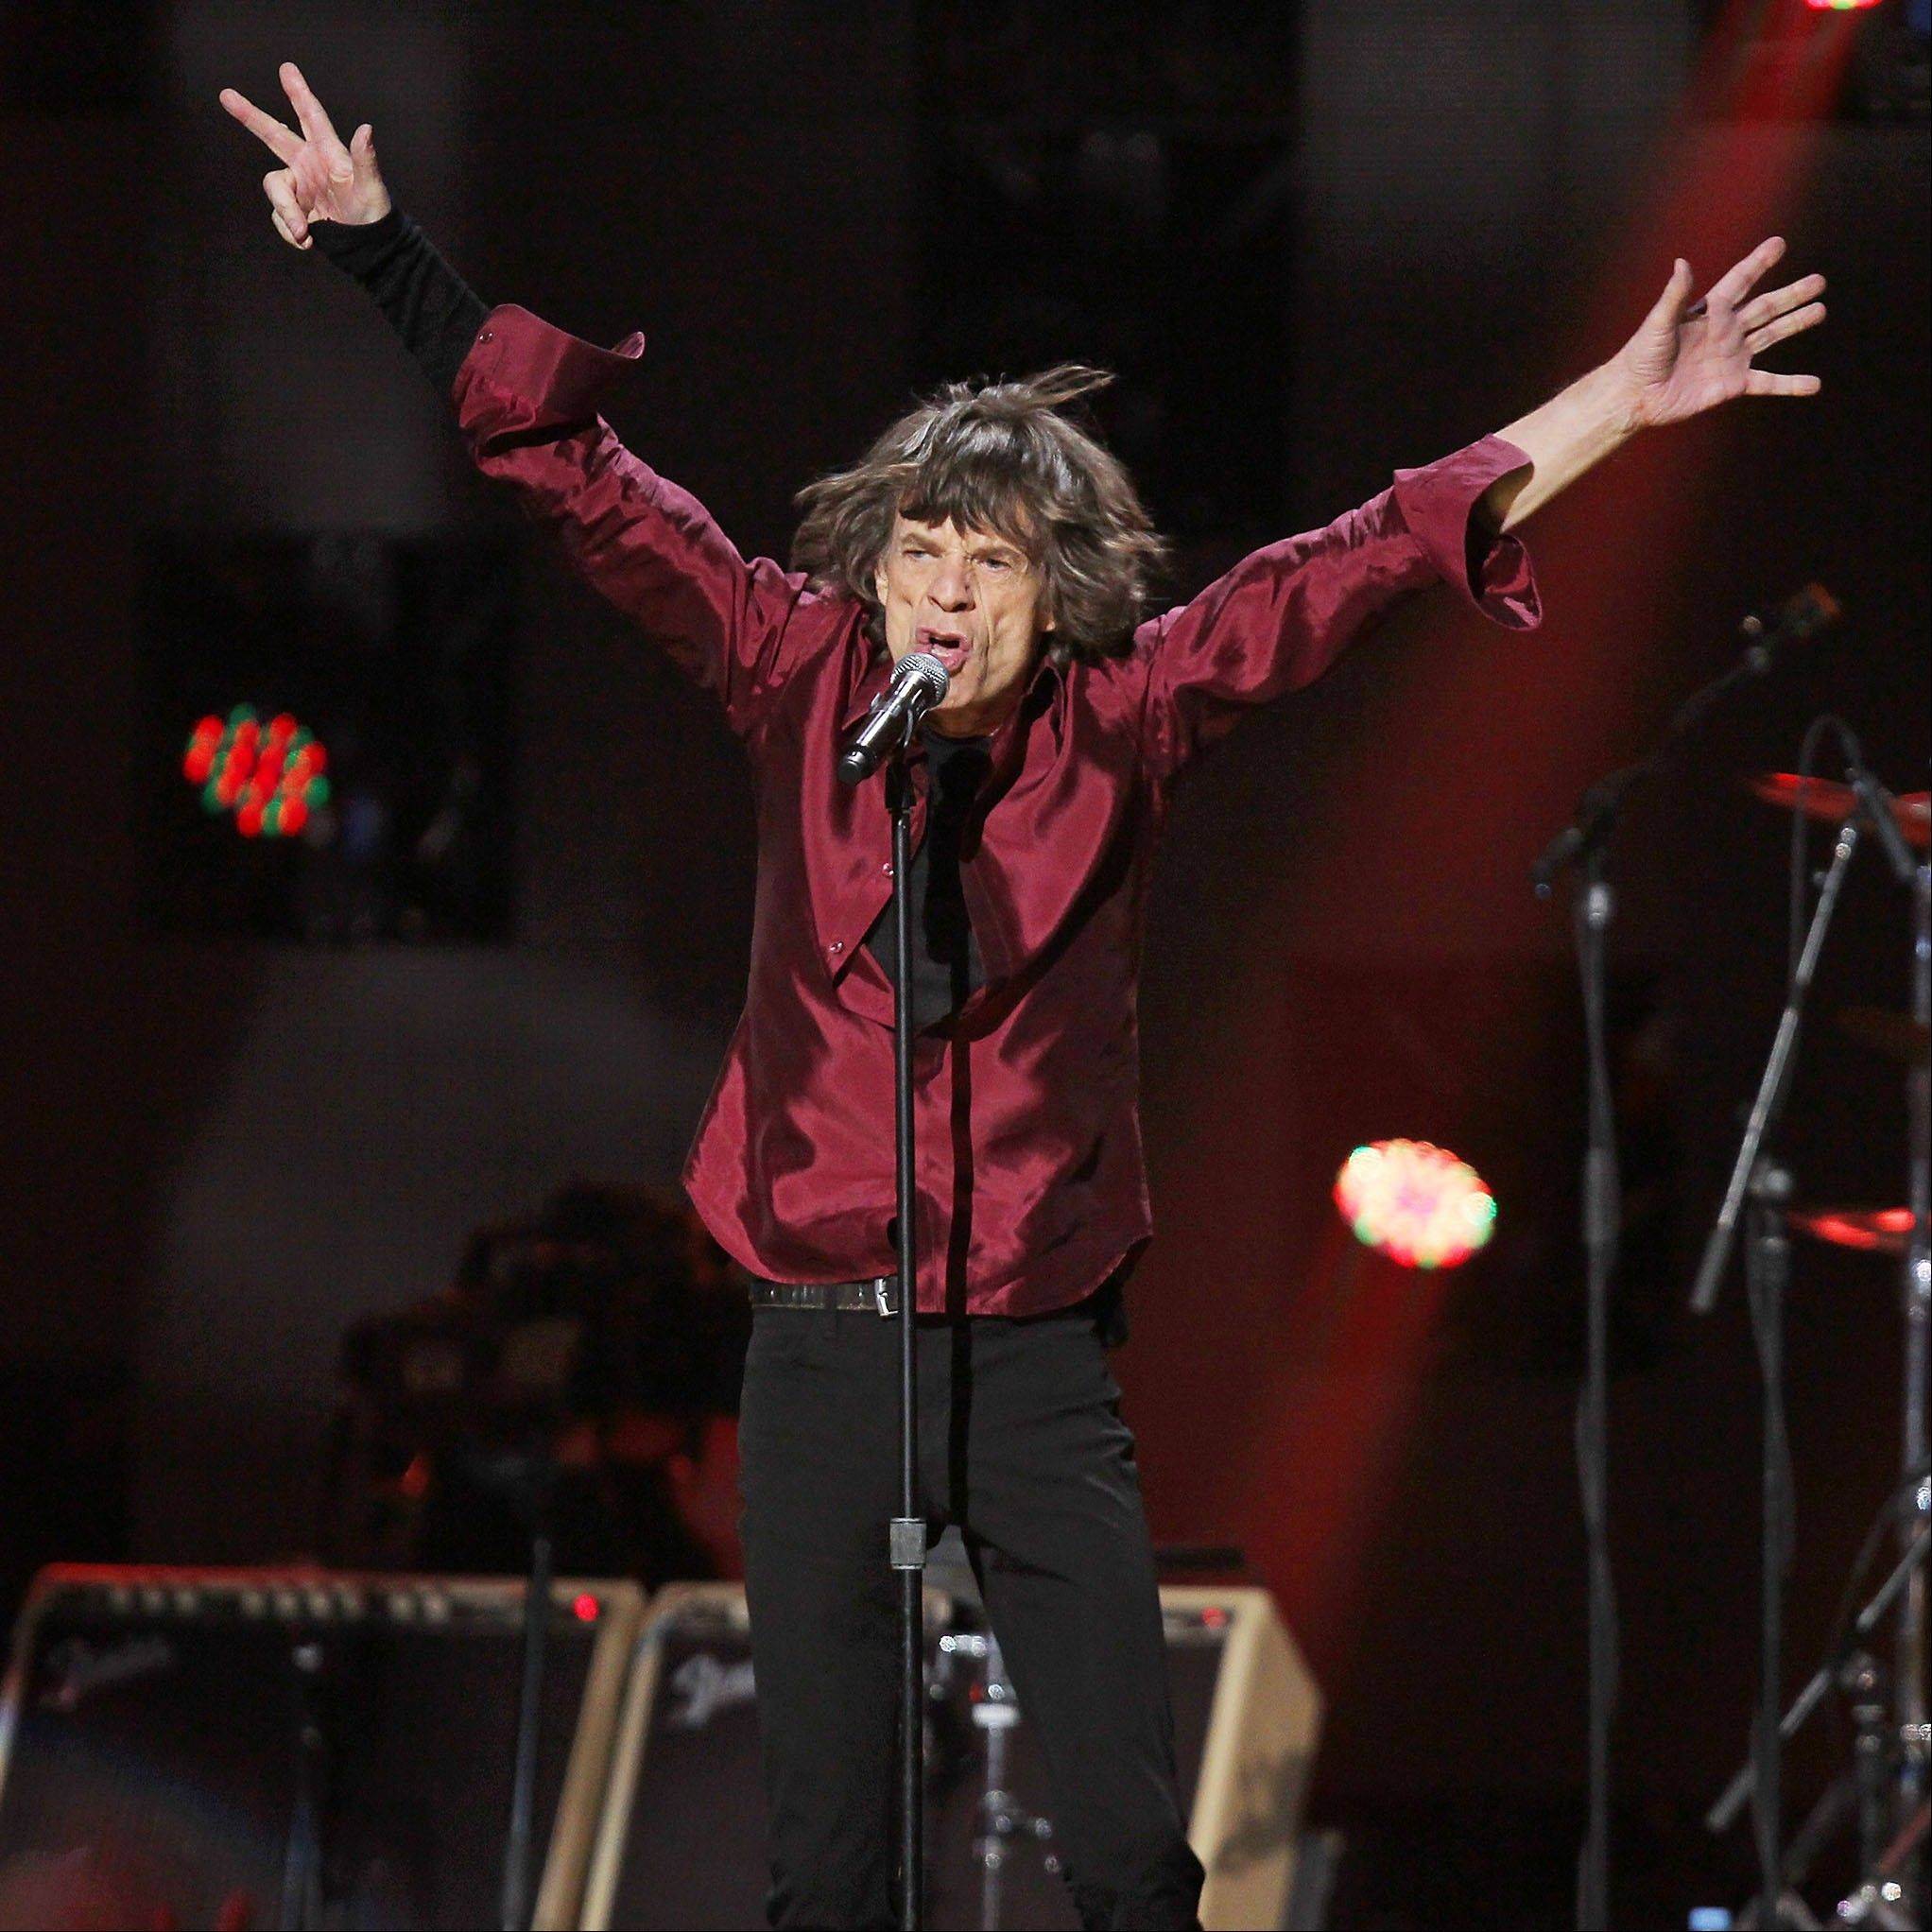 Mick Jagger of The Rolling Stones performs Wednesday at the 12-12-12 The Concert for Sandy Relief at Madison Square Garden in New York.